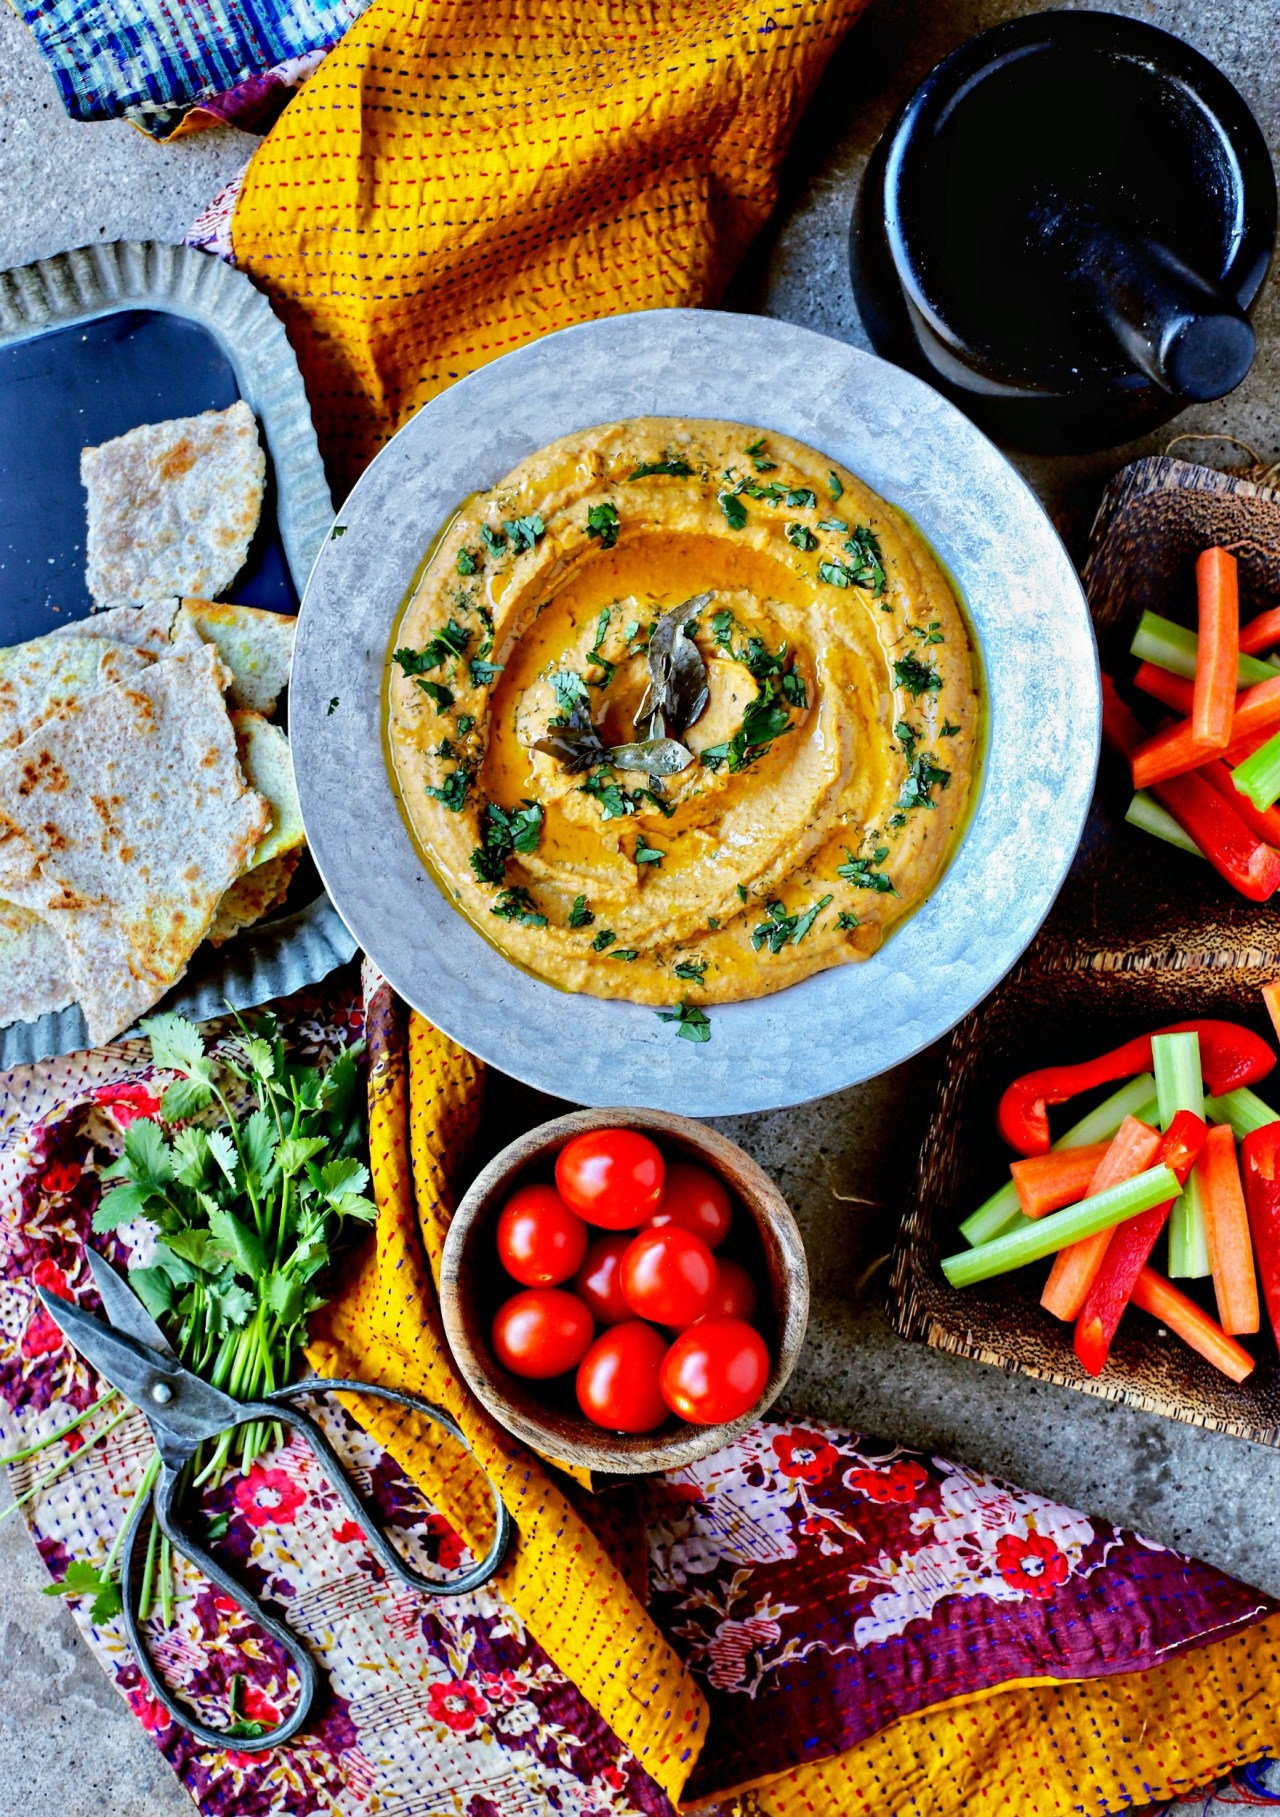 Spice up your hummus game with Indian spices and lentils to make dal hummus. A most perfect dip and spread for healthy, vegan, snacks and lunches. Spread this dip on wraps or use it to plunge in fresh vegetables and bread.